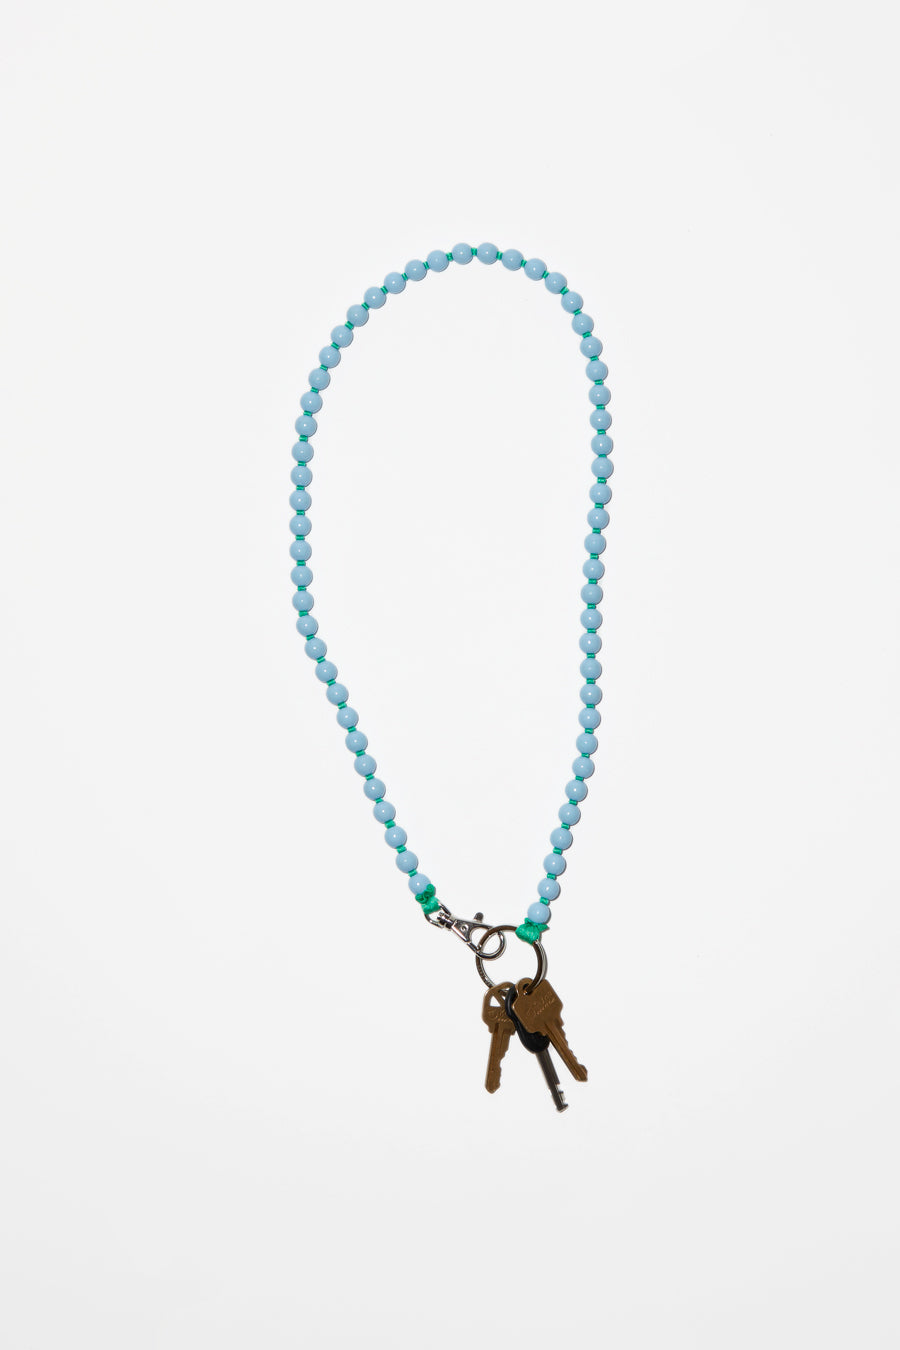 Ina Seifart Perlen Long Keyholder in Pastel Blue with Green Thread